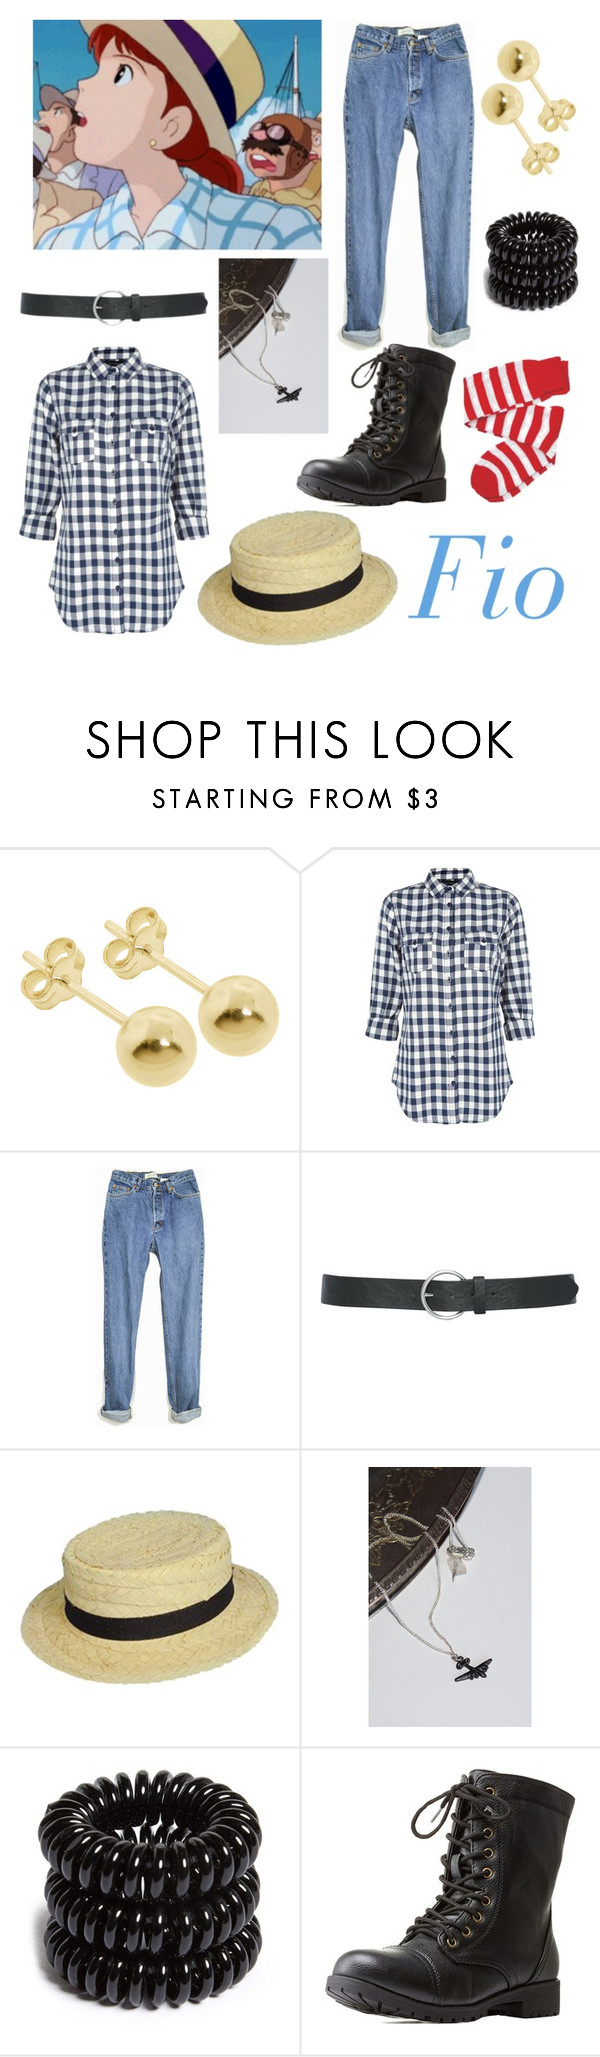 """""""PORCO ROSSO: Fio"""" by bluedaisywhale ❤ liked on Polyvore featuring Eternally Haute, M&Co, 16 Braunton, Invisibobble, Charlotte Russe, women's clothing, women, female, woman and misses"""